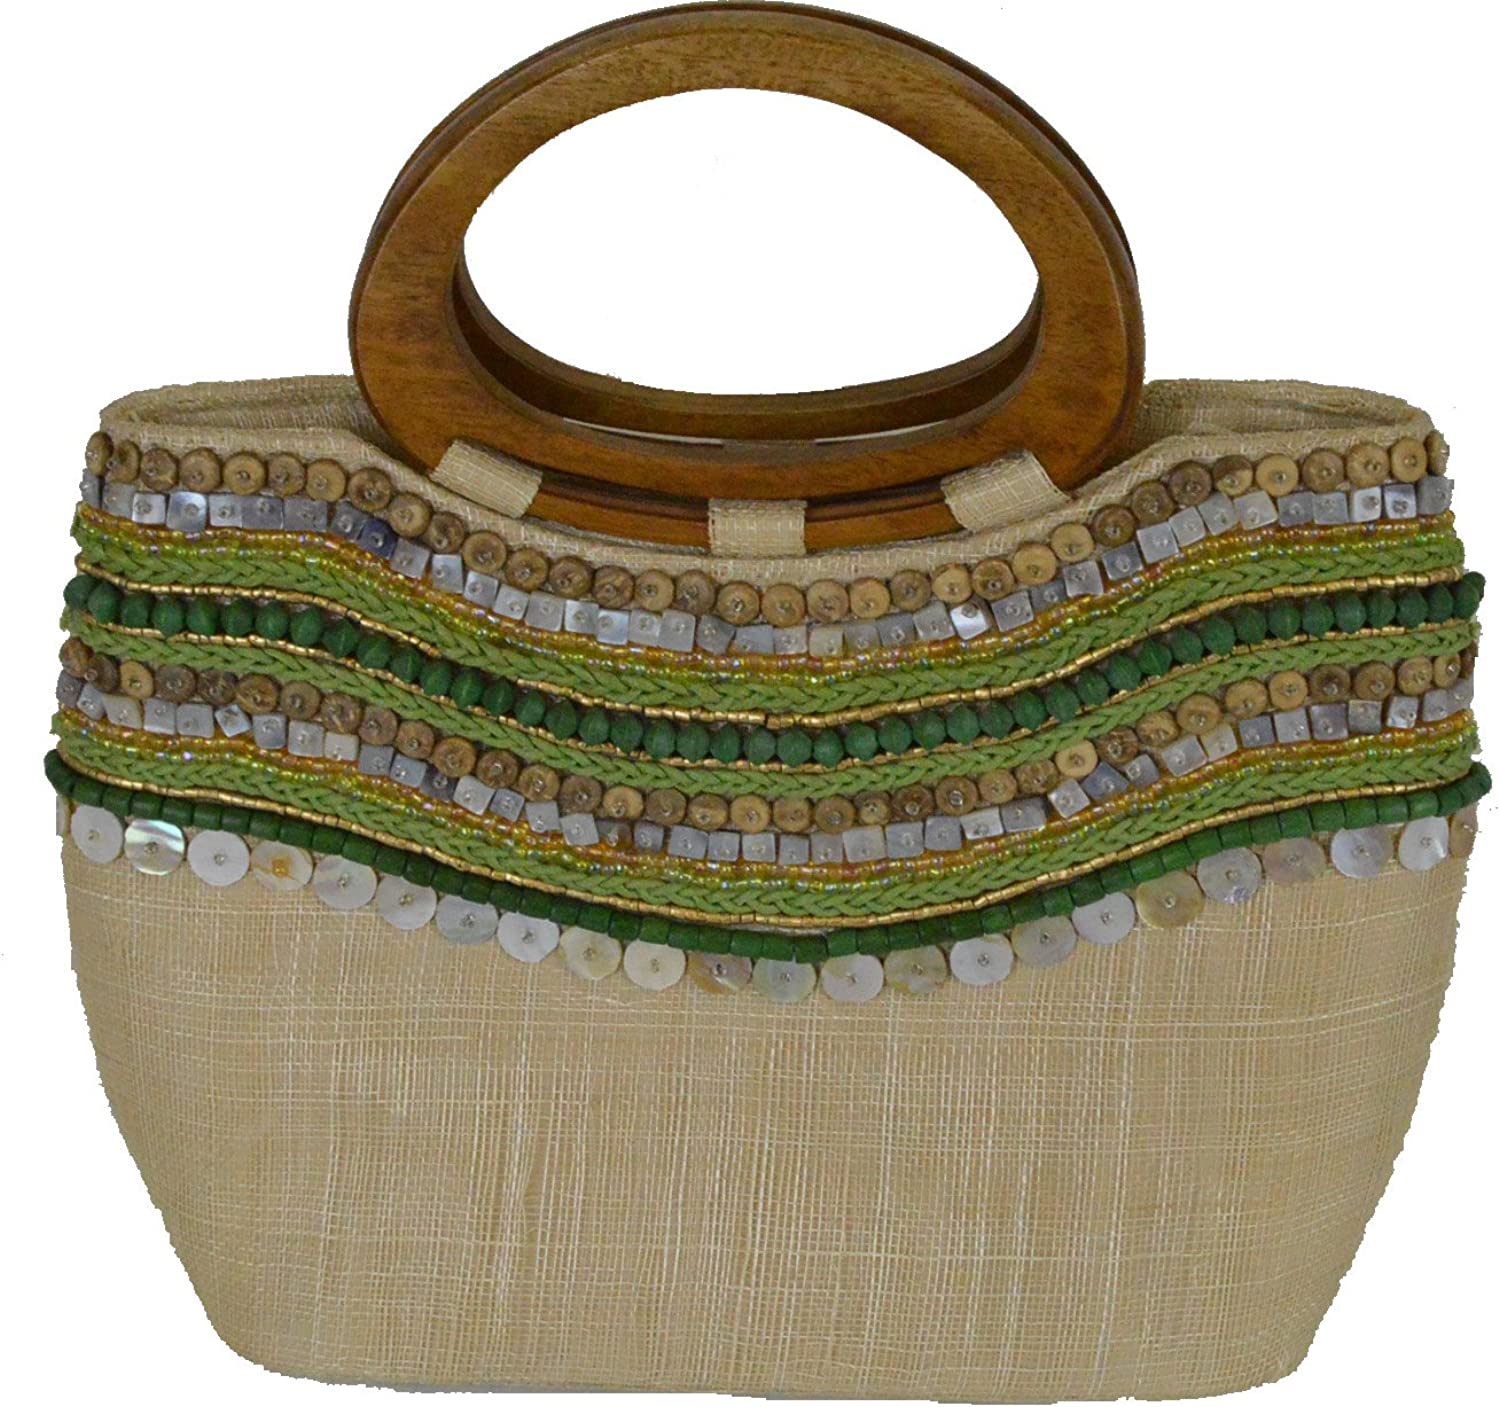 13 L Bali Natural Green Small ToteStyle Handbag with Bead and Seashell Inlay and Wood Double Handles